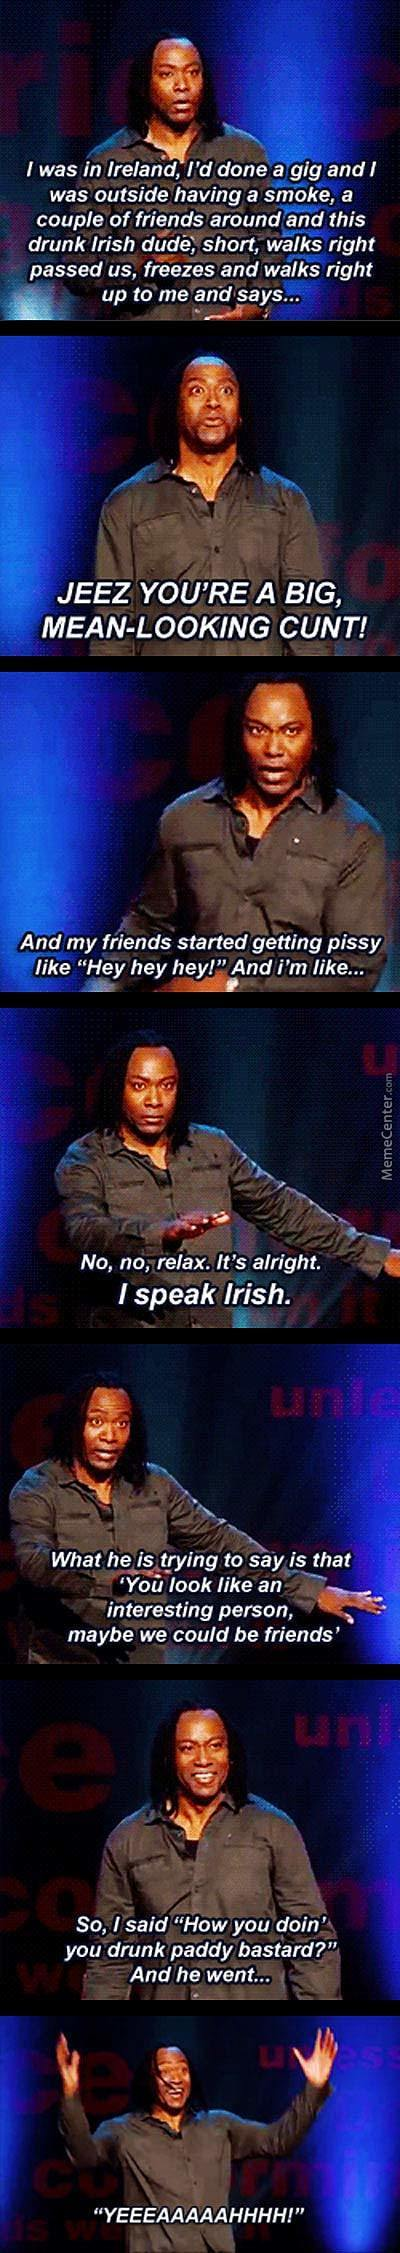 Ireland Memes Best Collection Of Funny Ireland Pictures